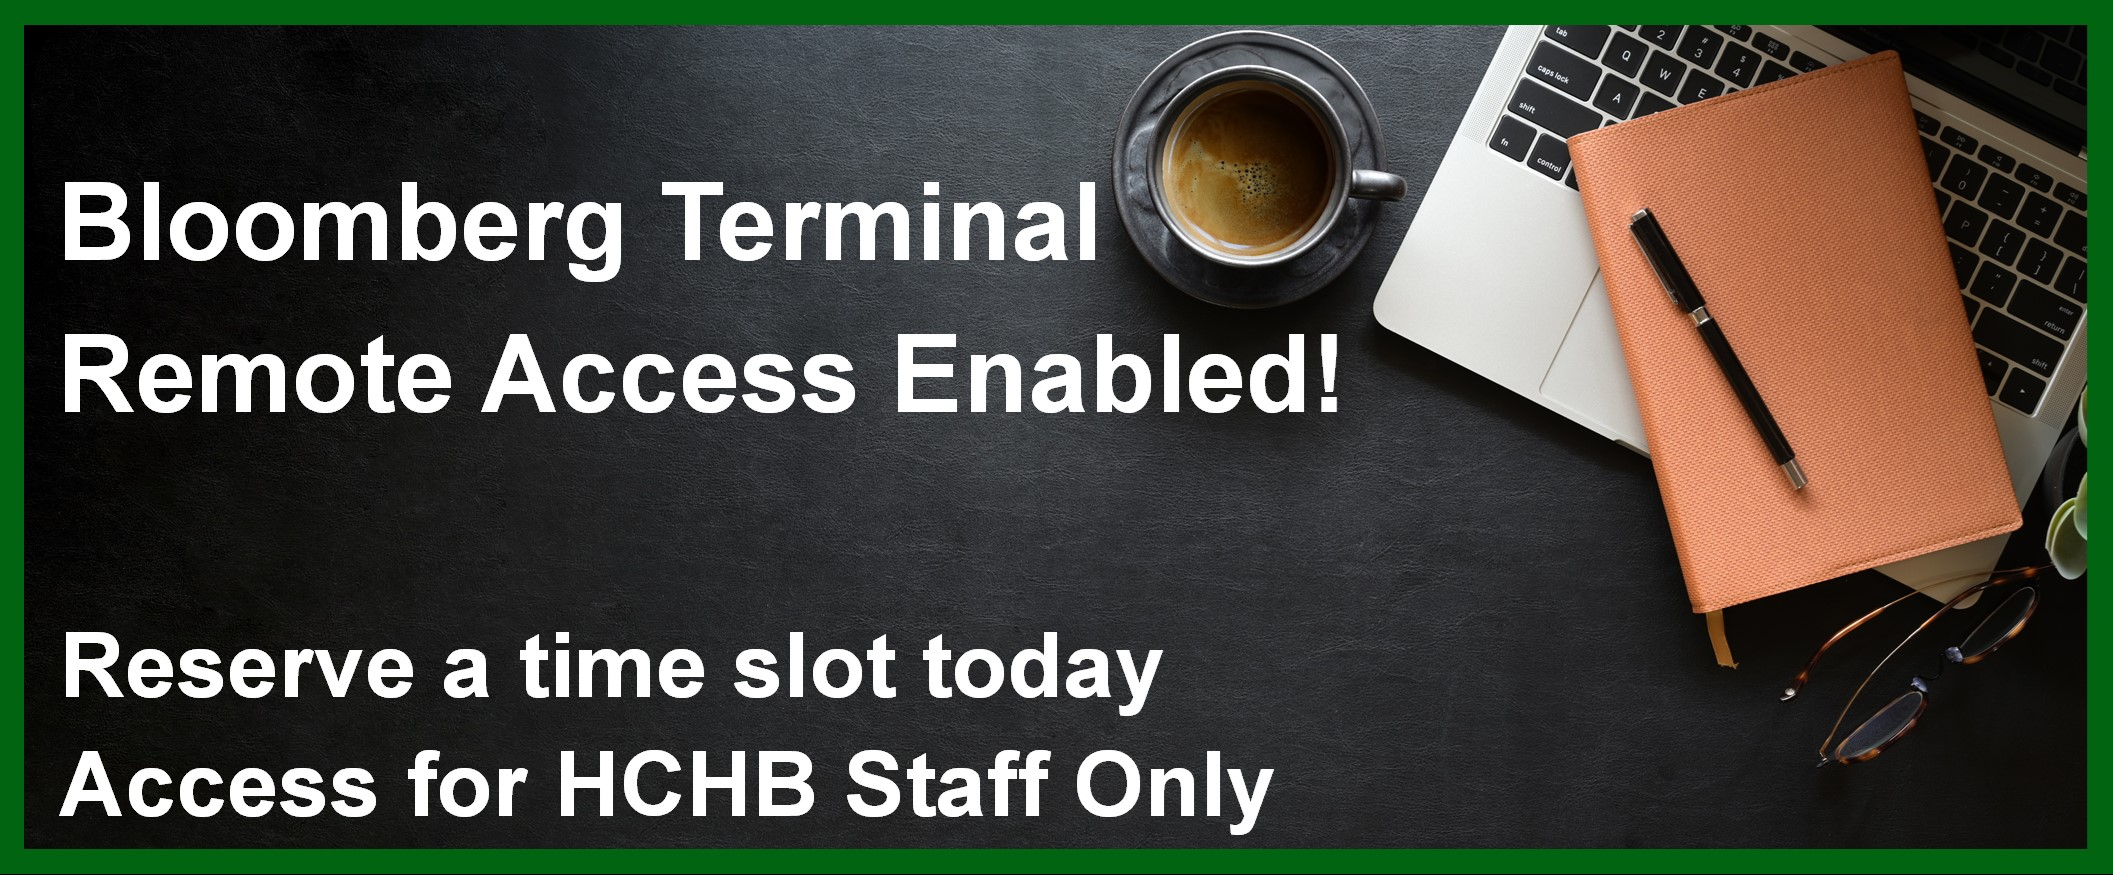 Bloomberg Terminal Remote Access Enabled! Reserve a time slot today Access for HCHB Staff Only